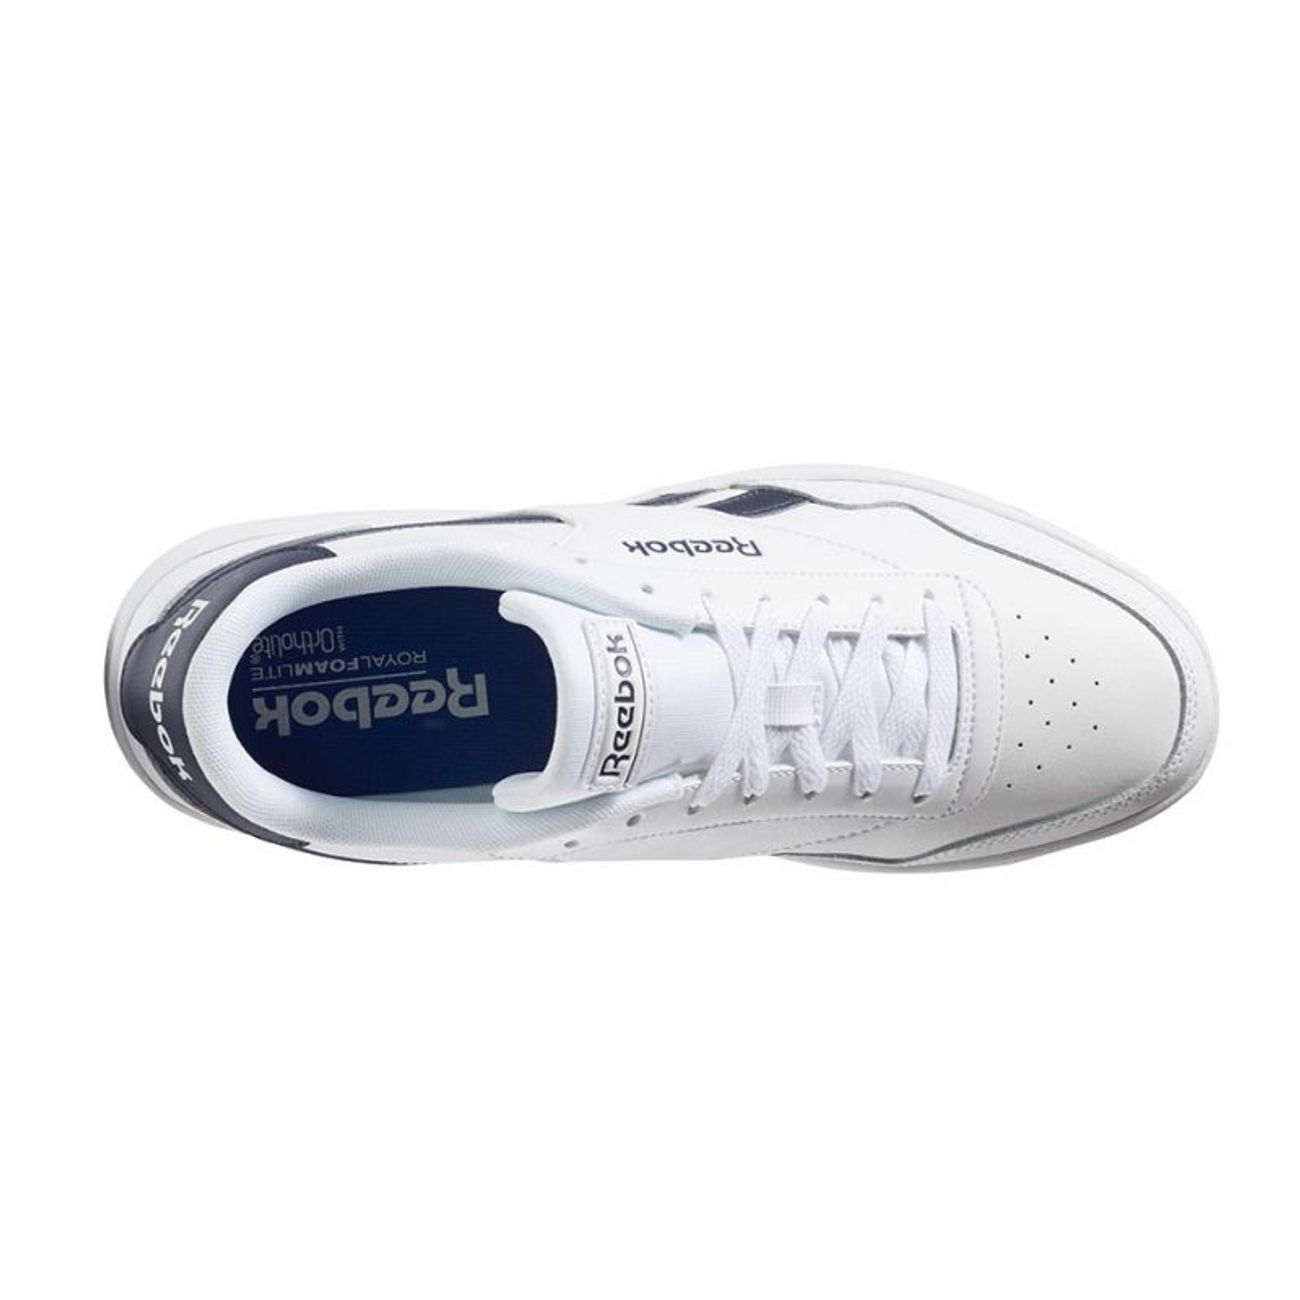 Adulte Royal Blanco Reebok Padel Techque Cn7365 Azul SzVGUMpq